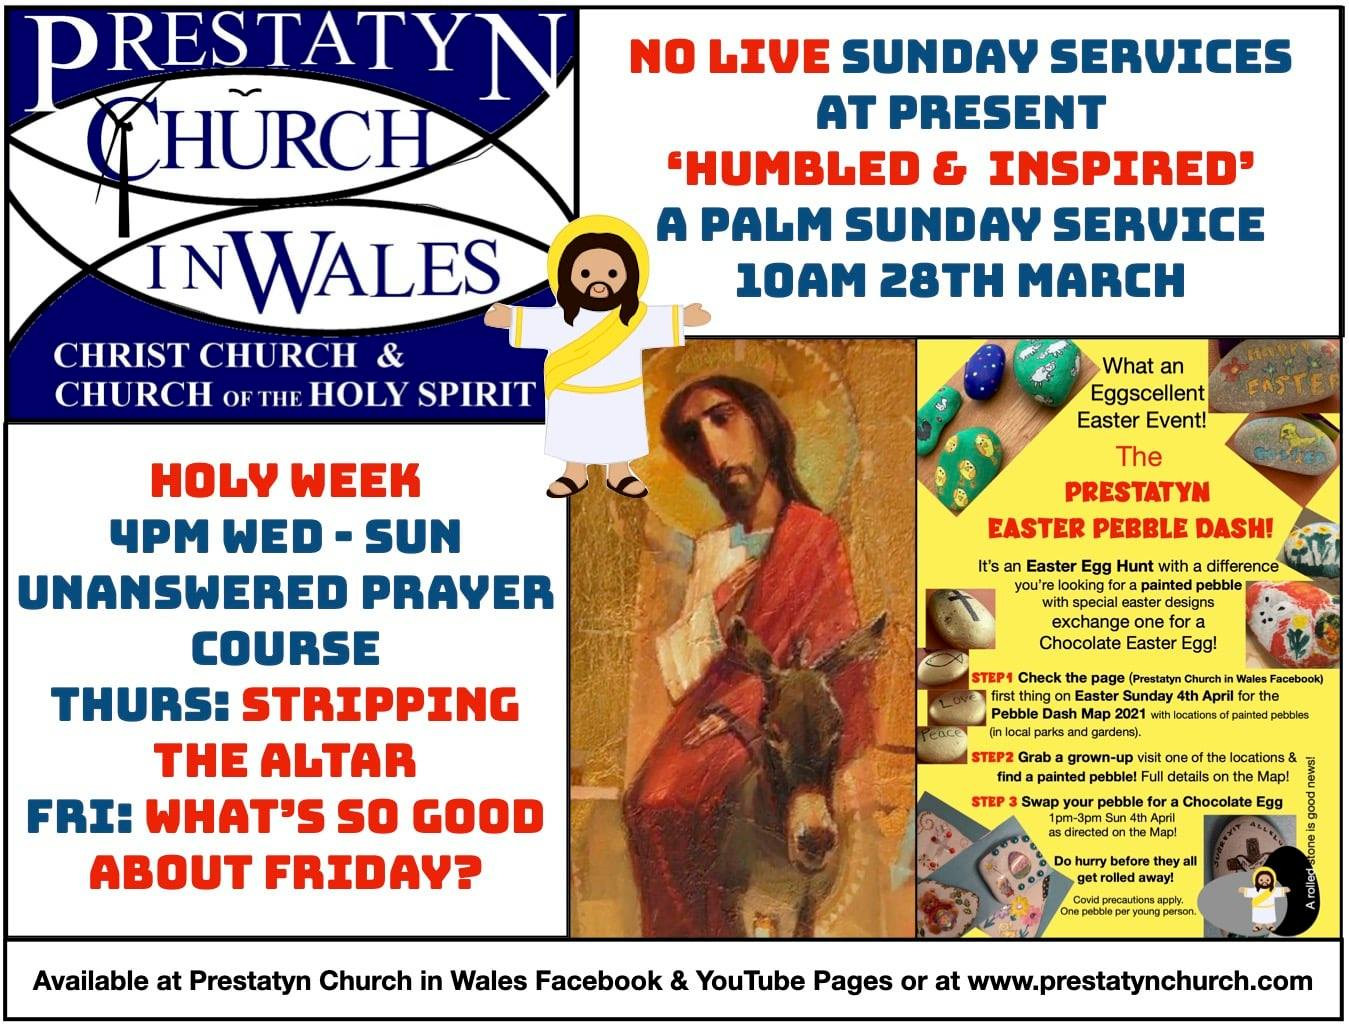 "Image containing text and images. Text reads: ""No live Sunday services at present. ""Humbled & Inspired"" - A Palm Sunday Service - 10 AM 28th March. Holy Week 4PM Wed - Sun Unanswered Prayer Course. Thurs: Stripping The Altar. Fri: What's so good about Friday?"" Available at Prestatyn Church in Wales Facebook & Youtube  Pages or at www.prestatynchurch.com."""